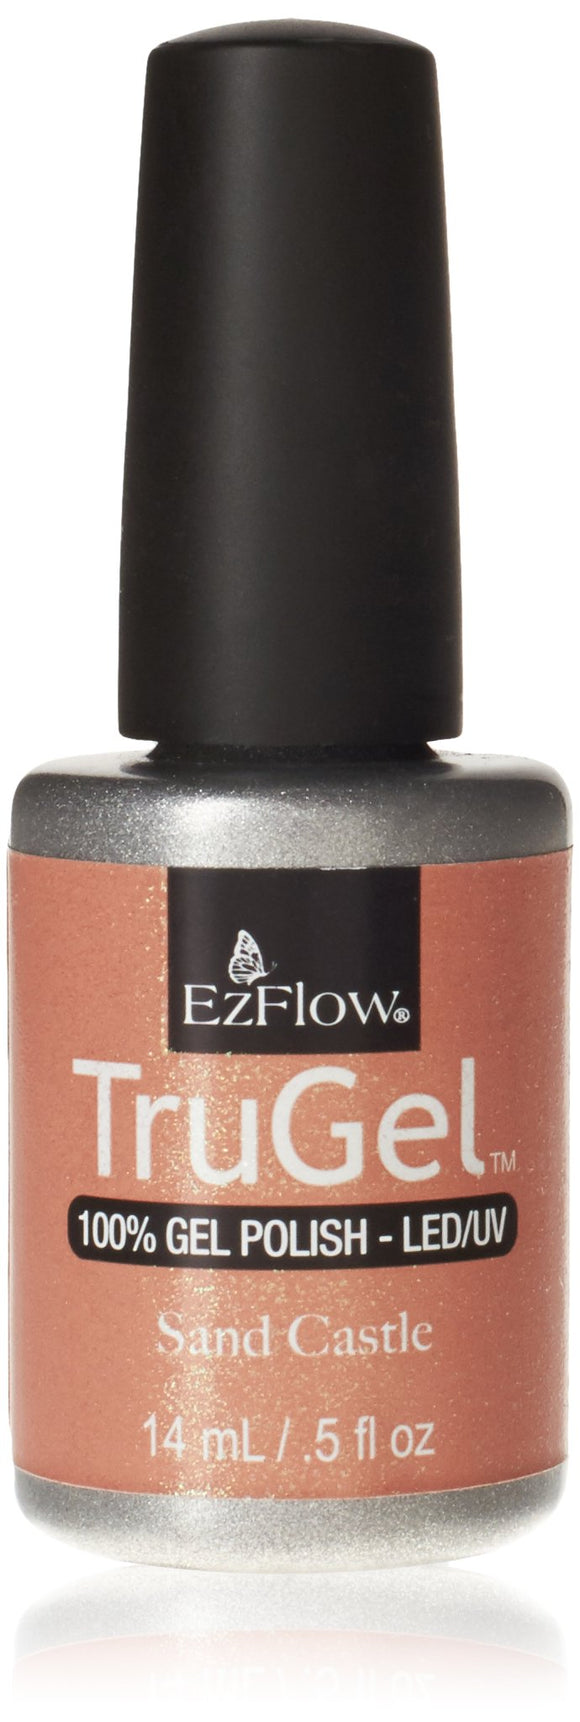 Ez Flow TruGel LED/UV Gel Polish - 14 mL (Sand Castle - EZTG42453)